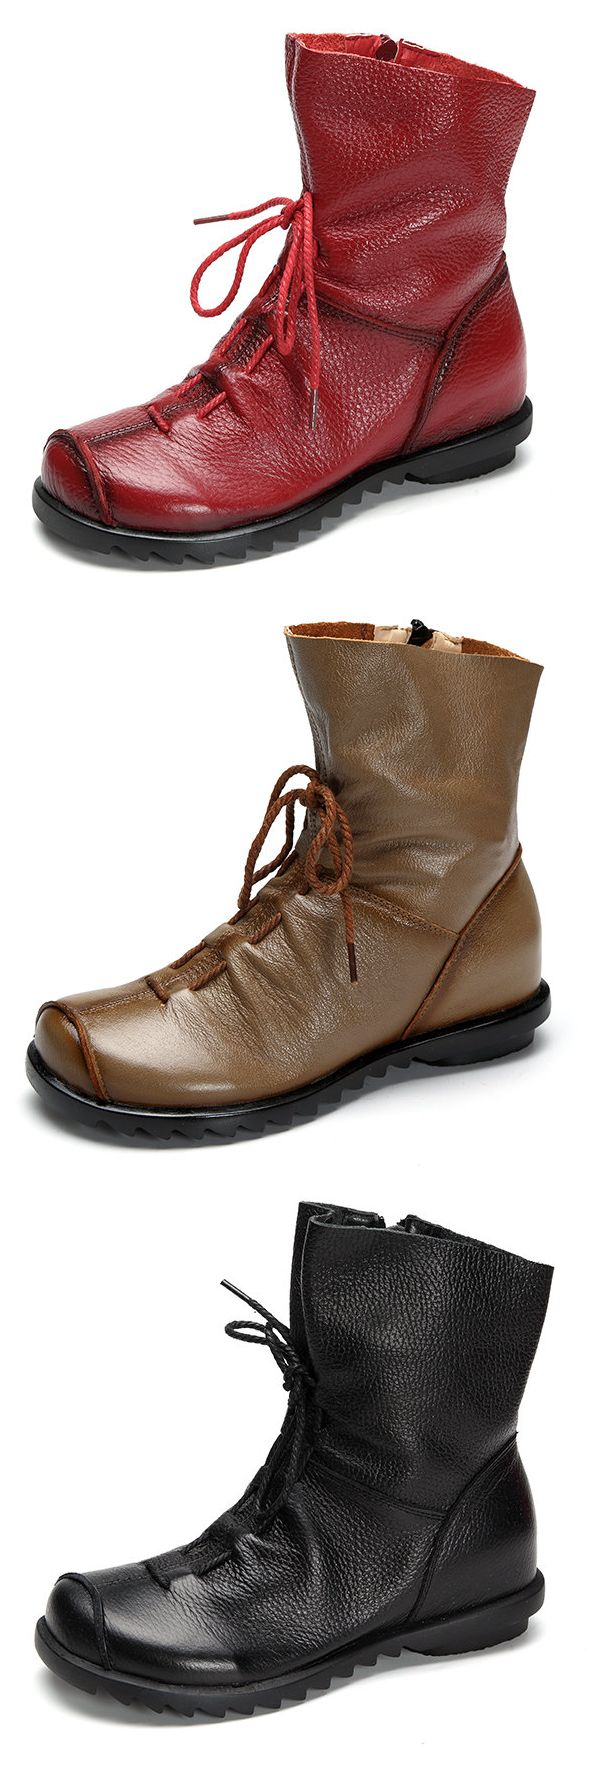 22 Best A New You Images By Usaa Shopping Discounts On Fileoutdoor Wiringjpg Wikipedia The Free Encyclopedia Us3259 Socofy Big Size Pure Color Lace Up Ankle Leather Comfortable Zipper Boots